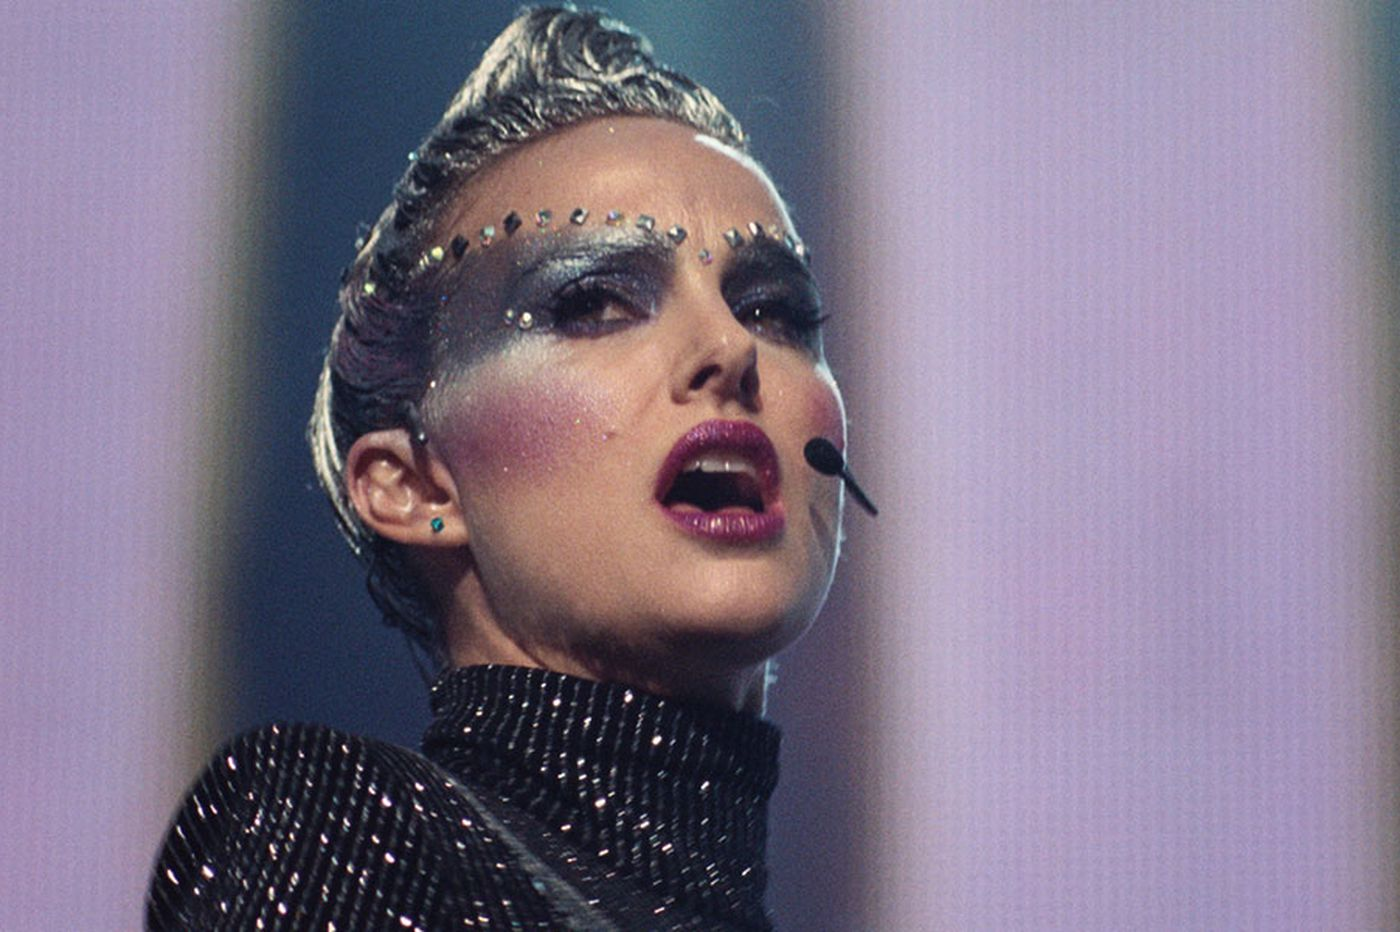 Natalie Portman on the pageantry of evil and playing a pop star in 'Vox Lux'